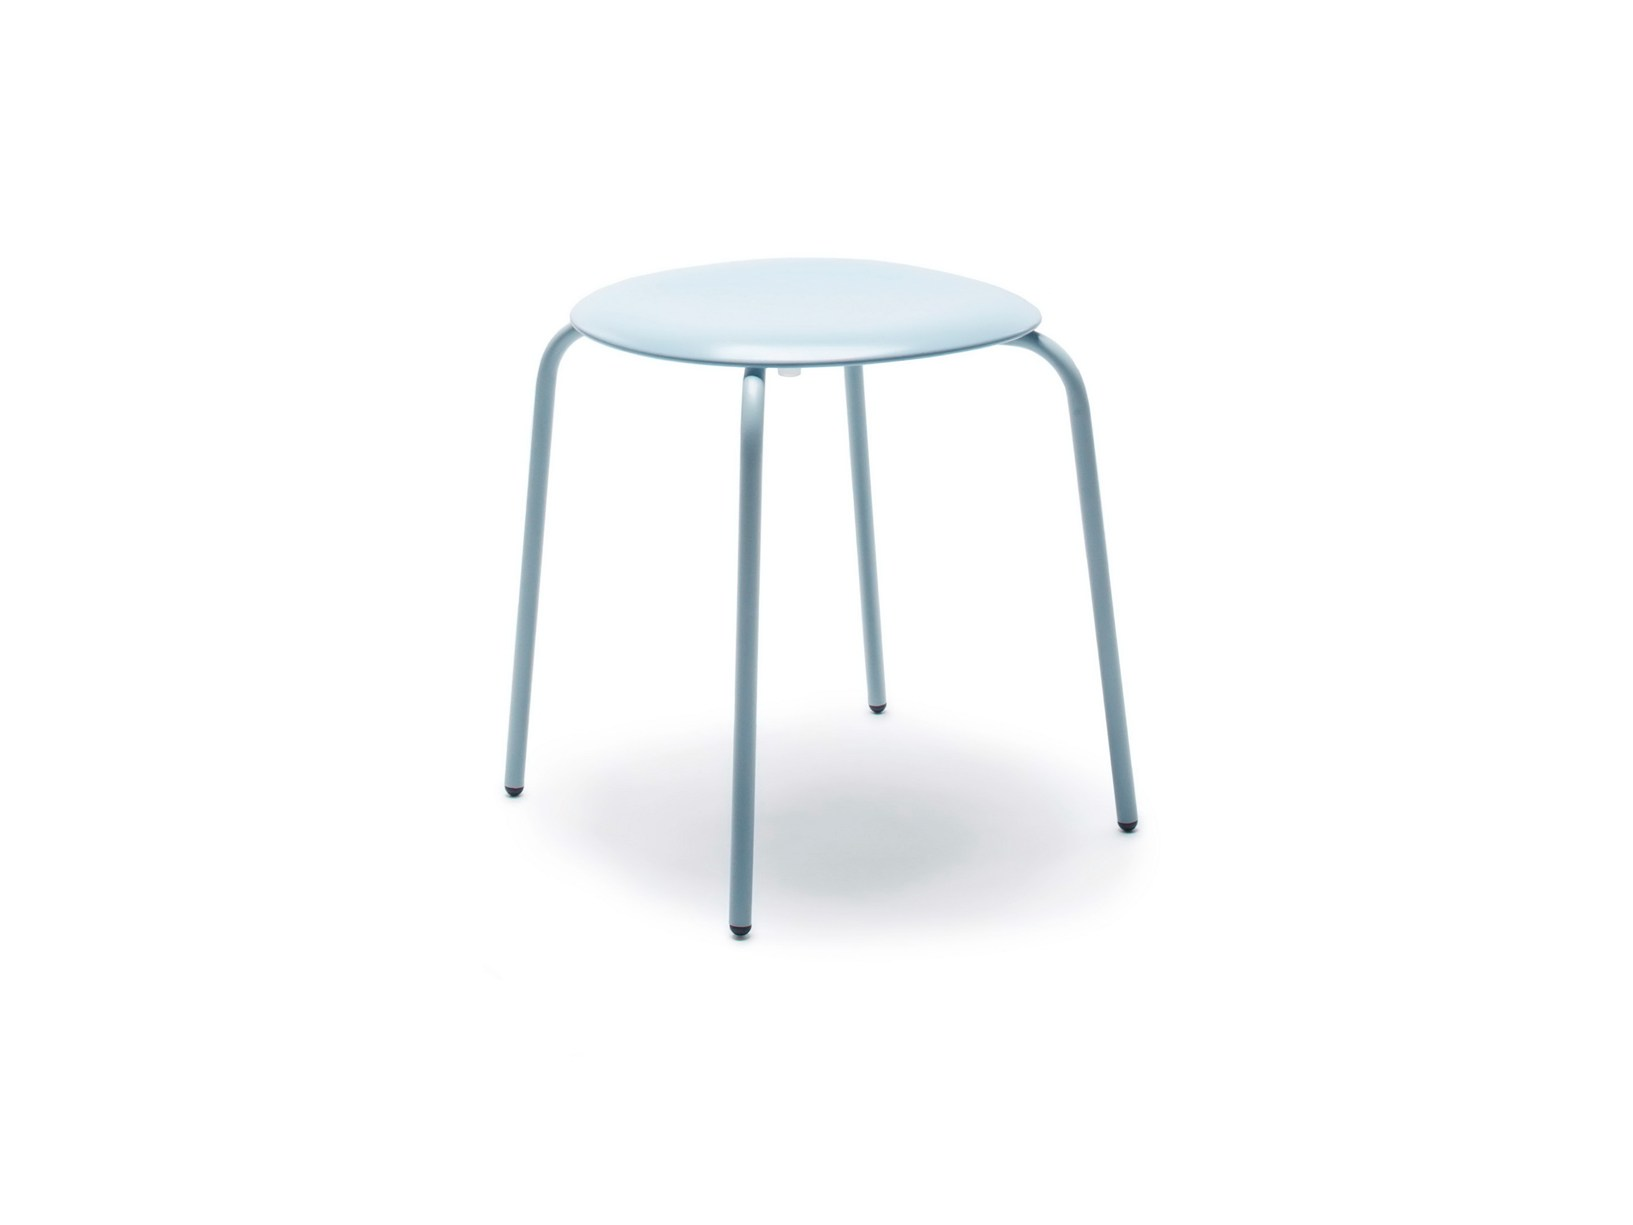 PRO STOOL Collection 2016 by Konstantin Grcic for Flötotto